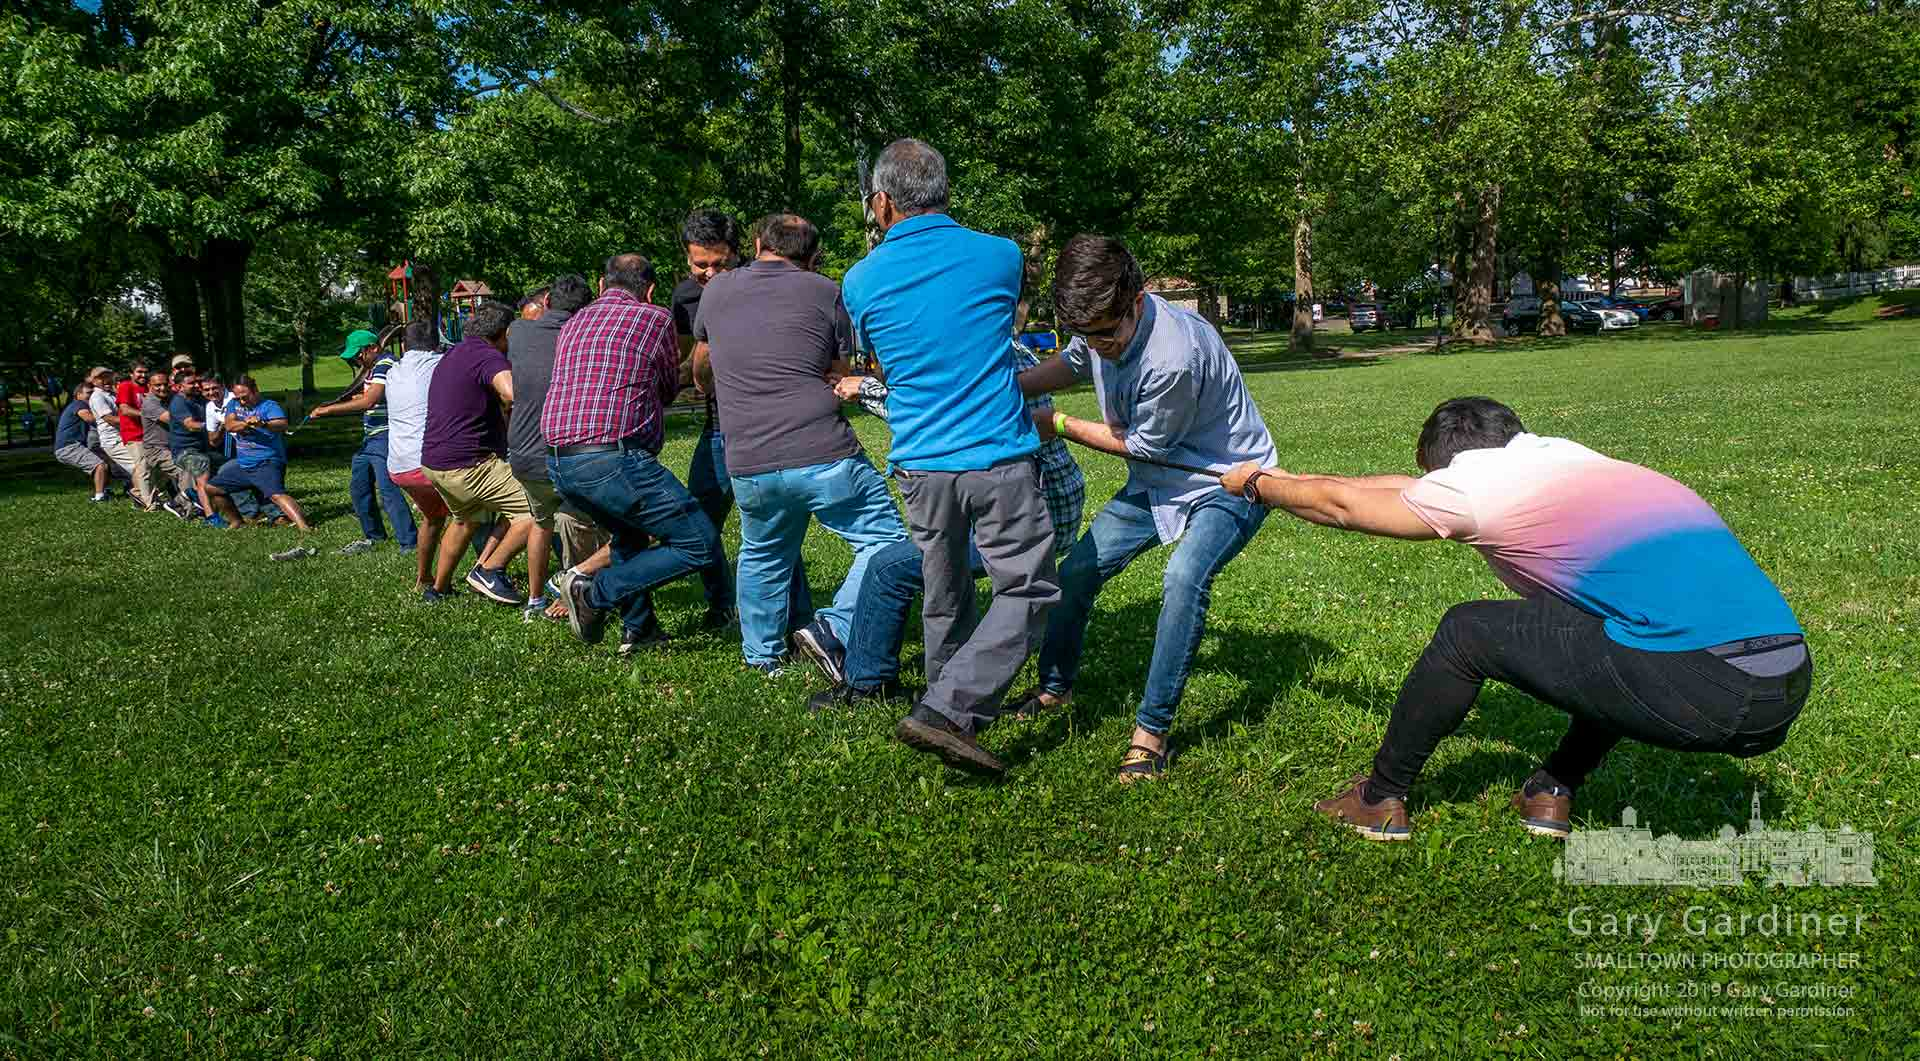 Two teams of men compete in a tug-of-war competition near the pavilion at Alum Creek Park North where they held a picnic for their temple. My Final Photo for June 22, 2019.